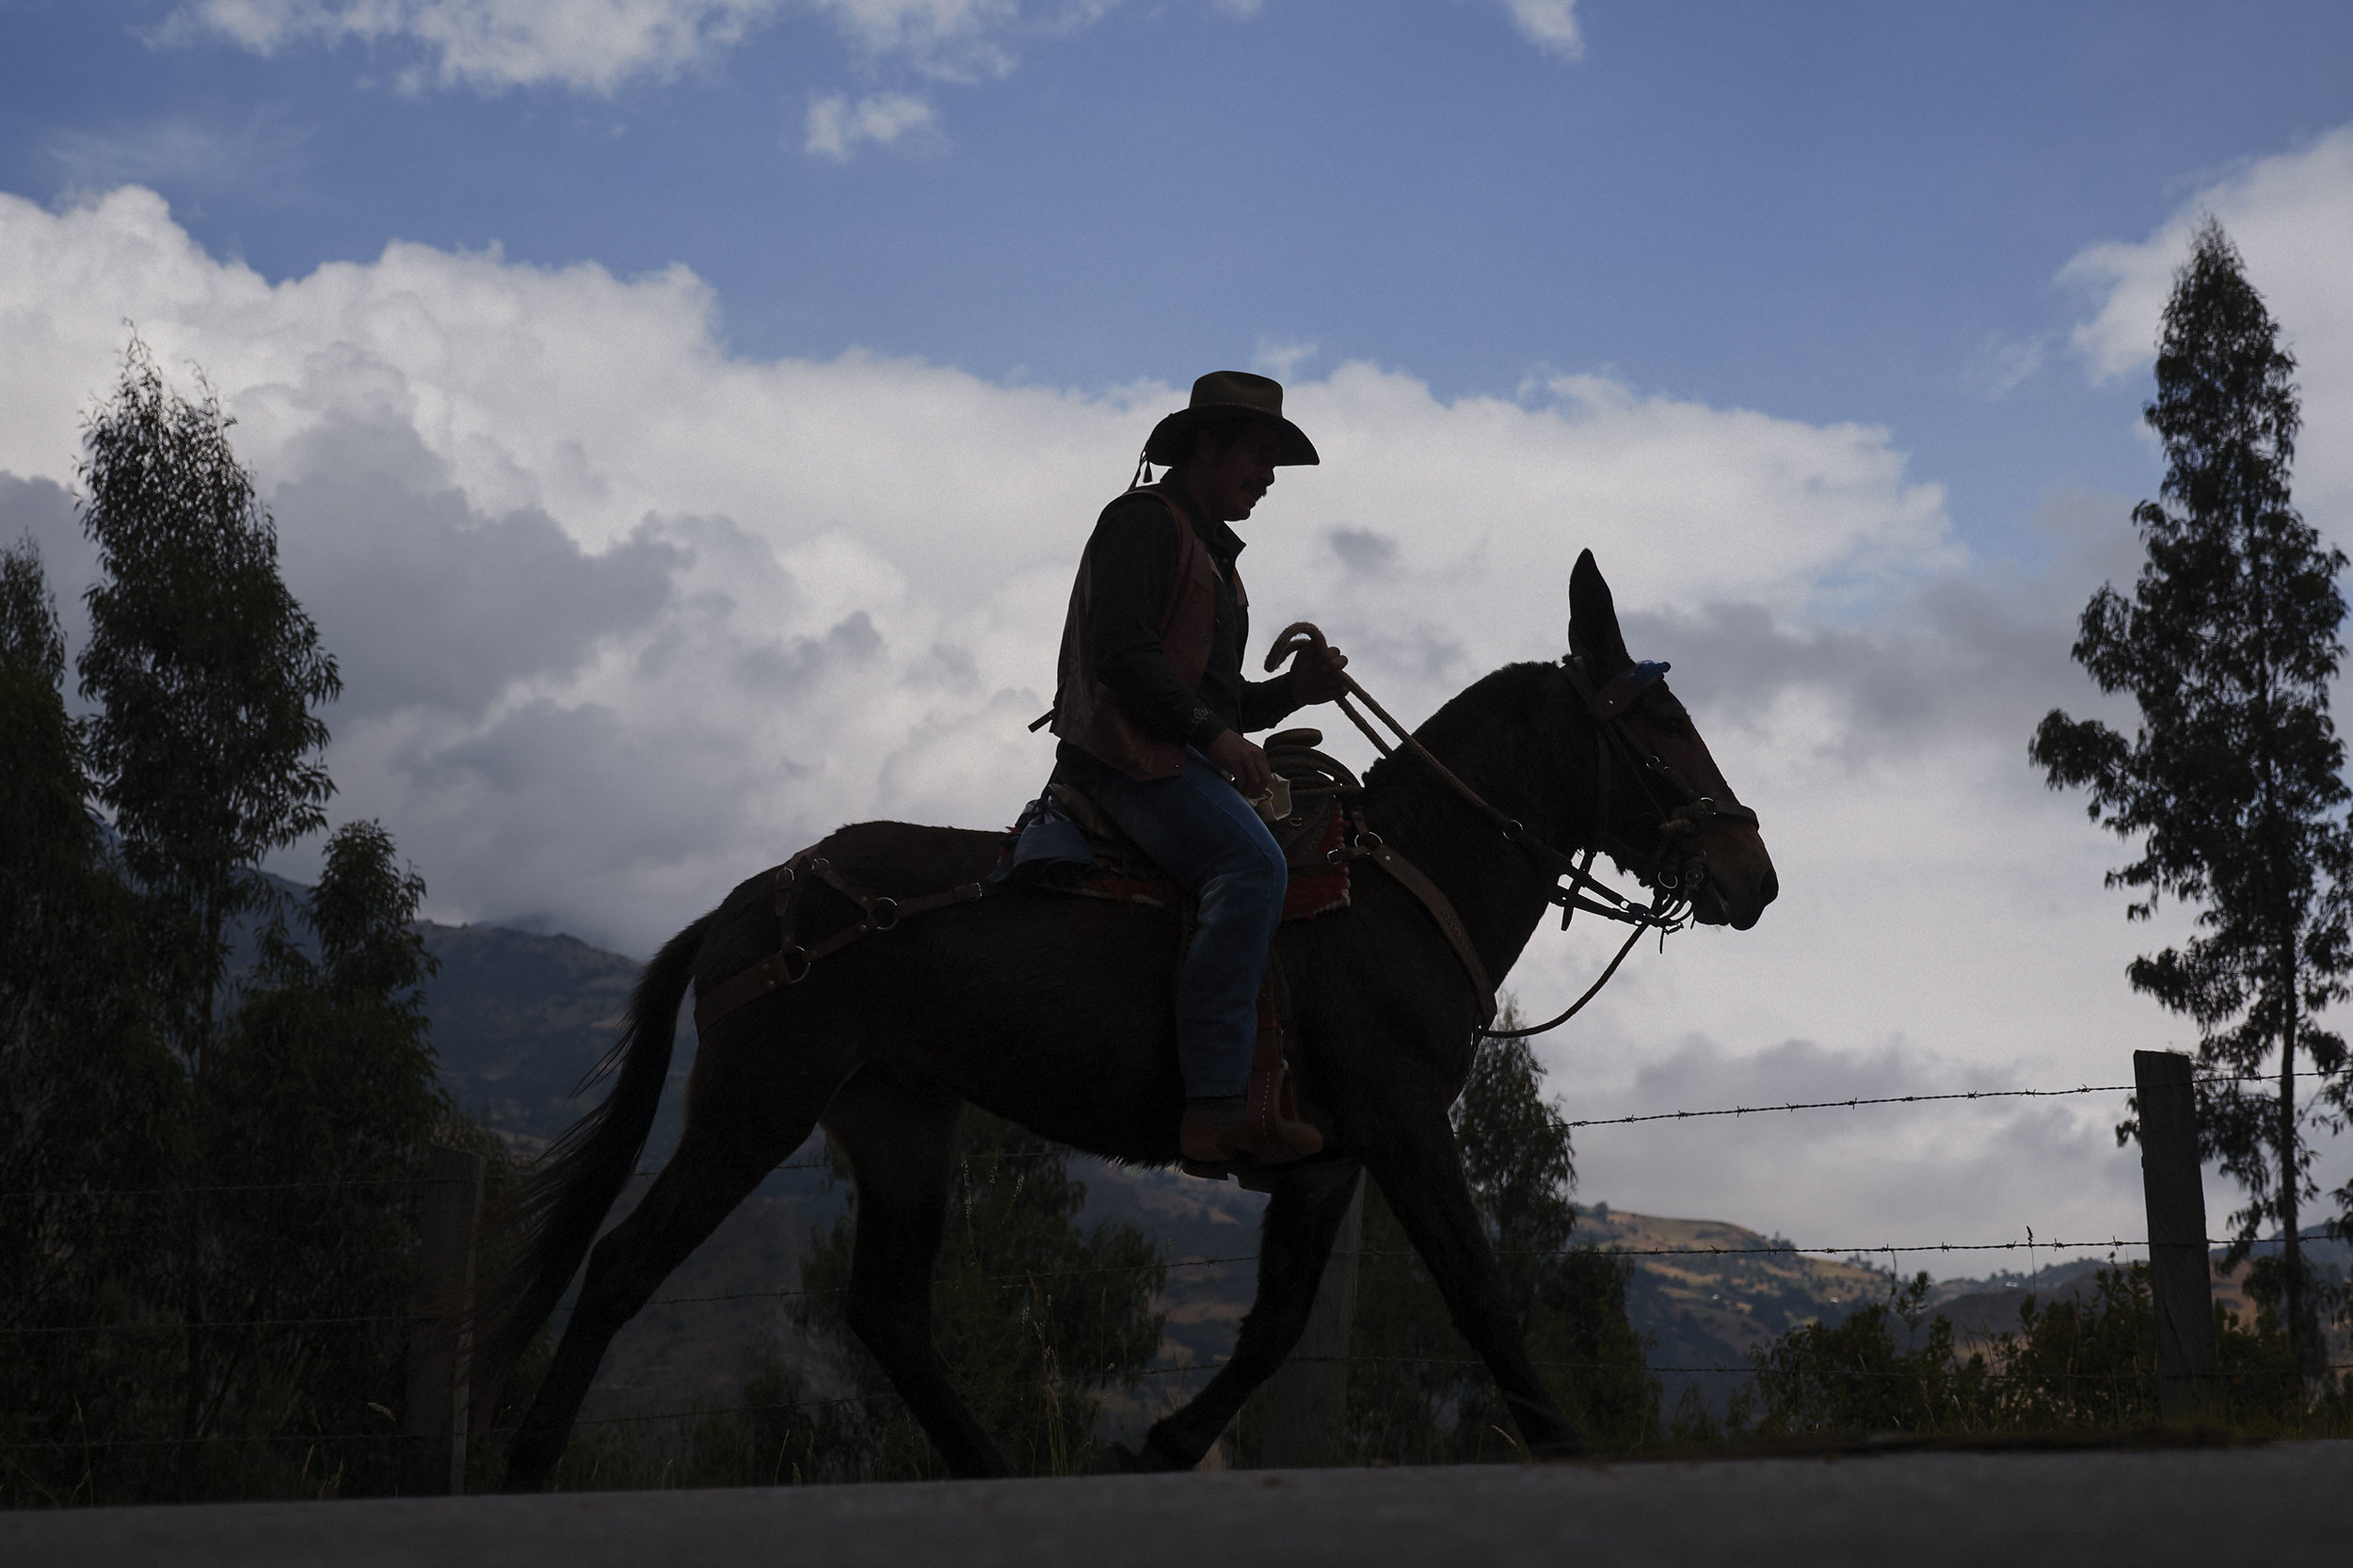 Horseman at a horse parade in Mongua Colombia